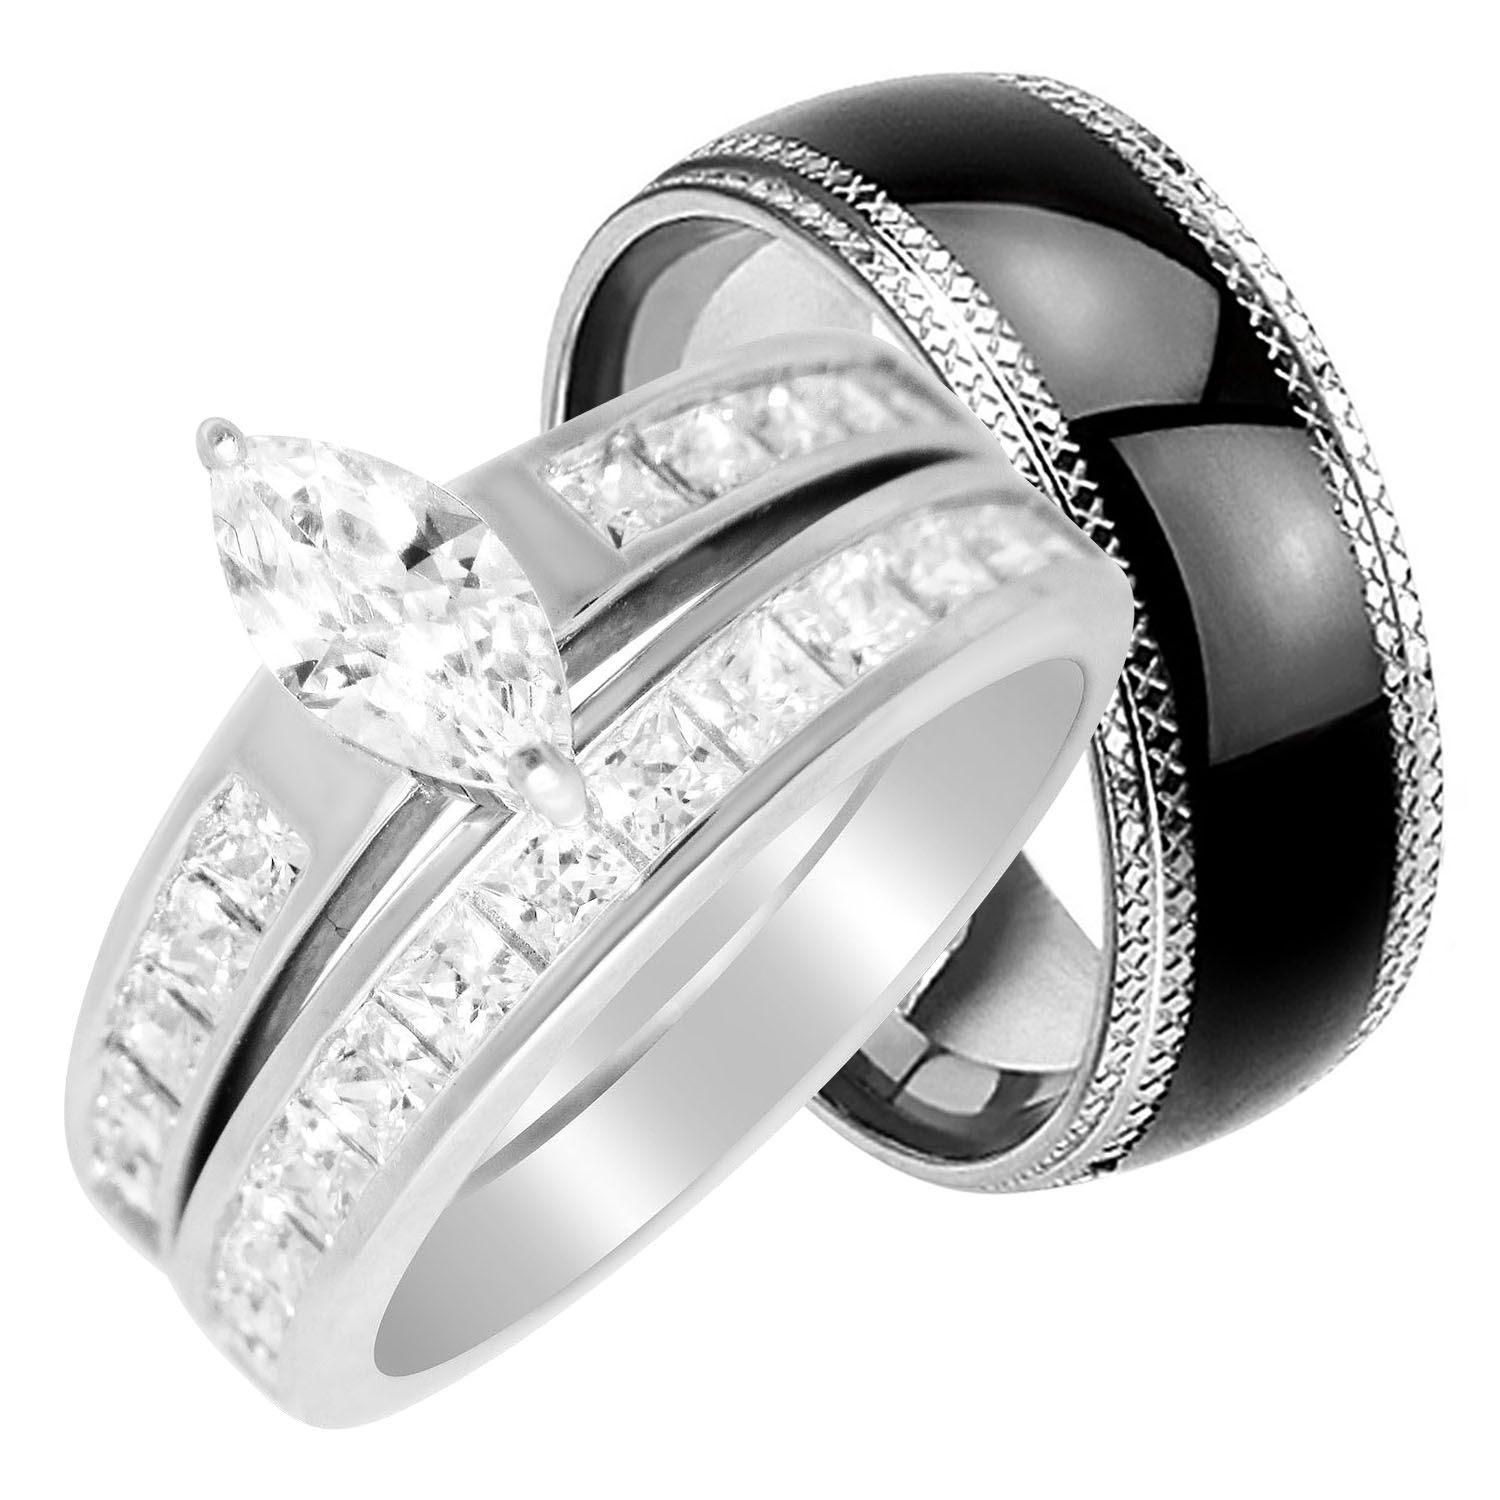 Laraso Co His Hers Wedding Rings Set Cheap Matching Wedding Bands For Him Size 11 And Her Size 5 Walmart Com In 2021 Cheap Wedding Rings Sets Wedding Ring Sets Wedding Rings